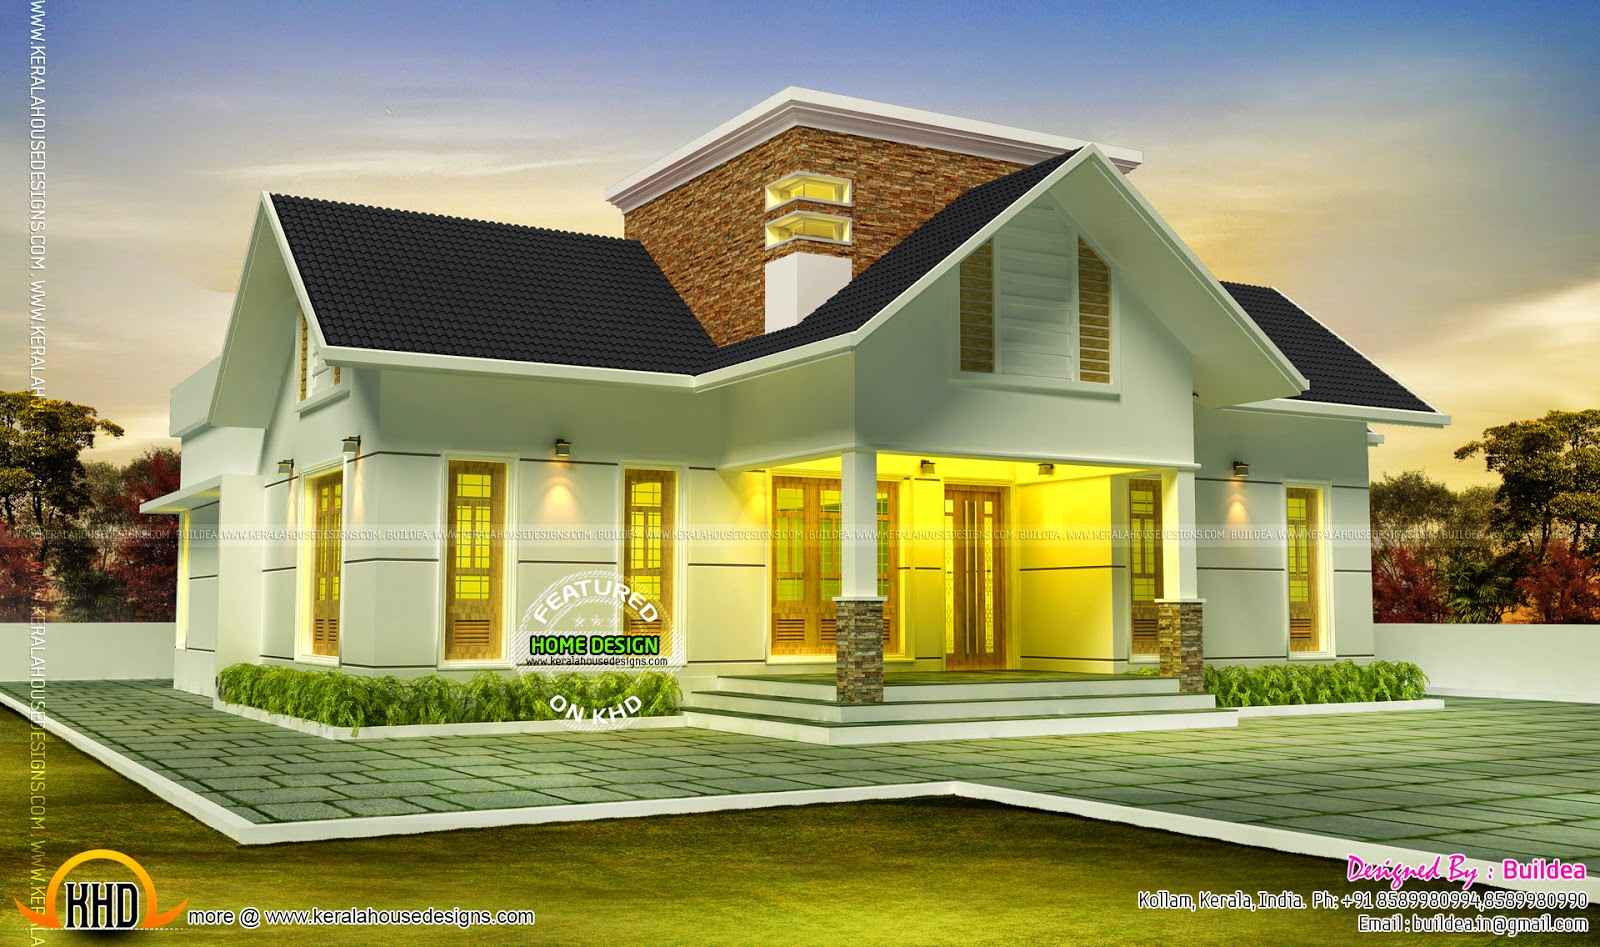 28 beautiful house picture amazing renderings of for Beautiful house design